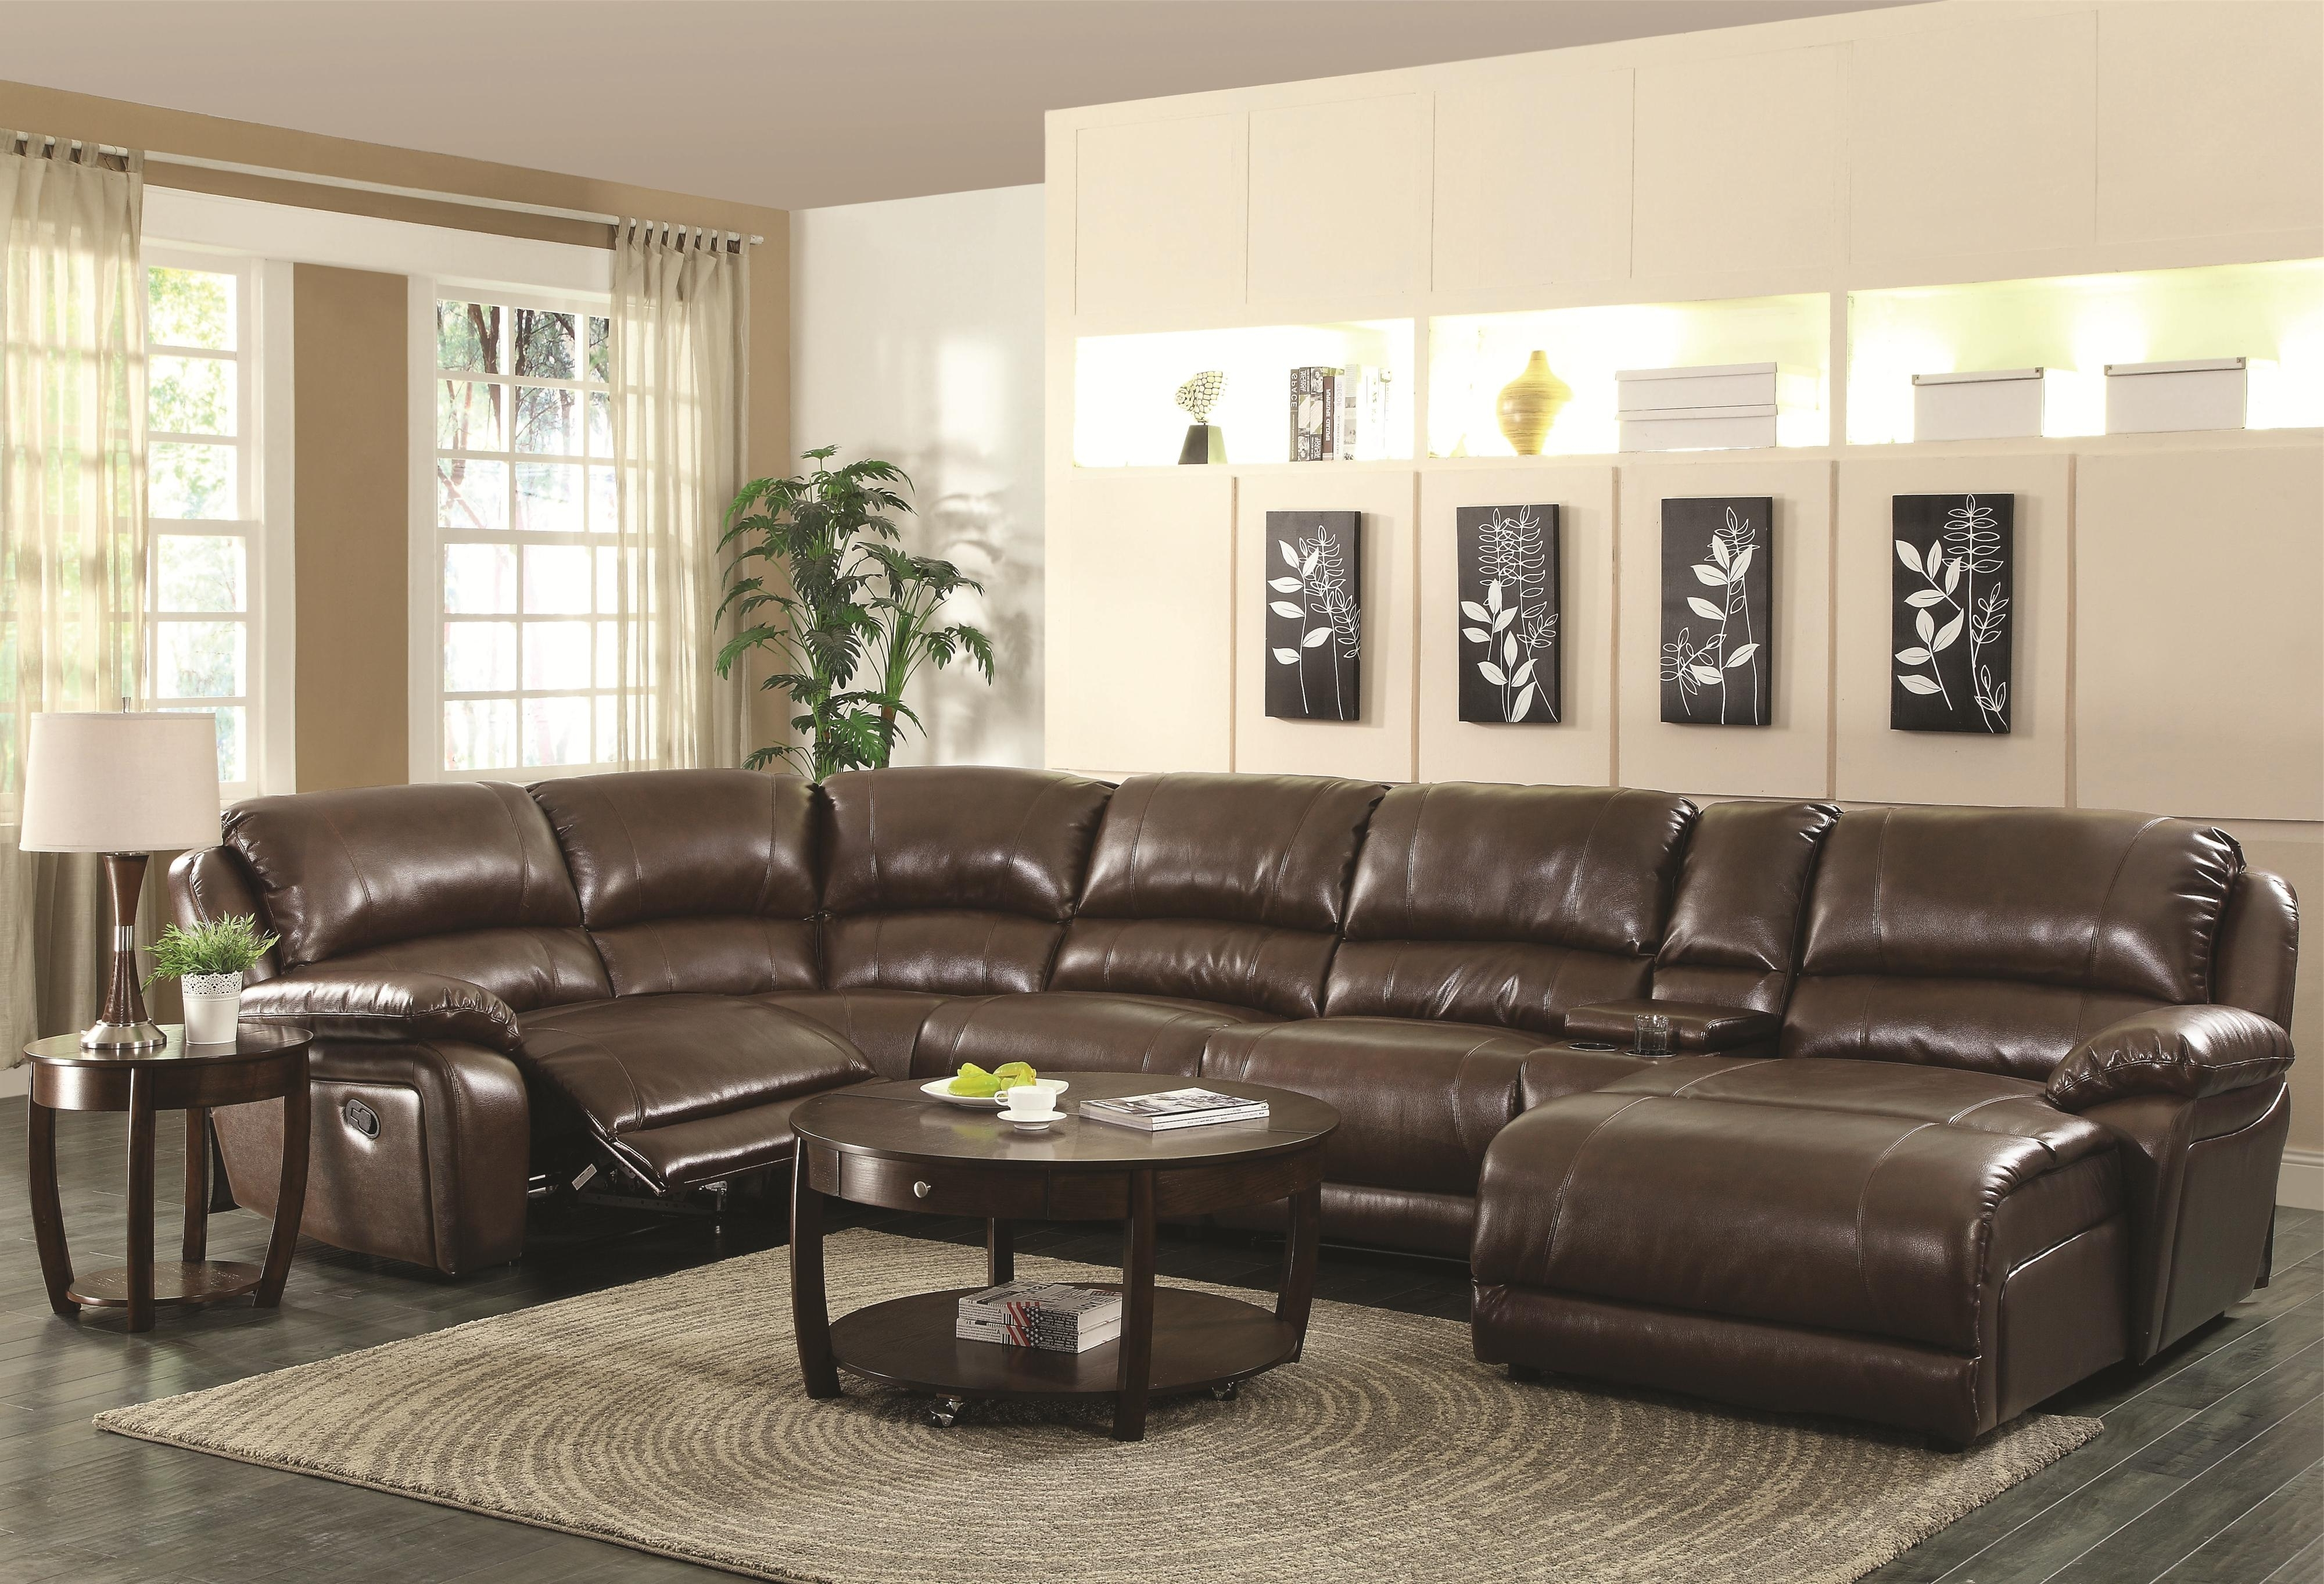 Sectionals With Recliner And Chaise Intended For Most Recent Coaster Mackenzie Chestnut 6 Piece Reclining Sectional Sofa With (View 3 of 15)